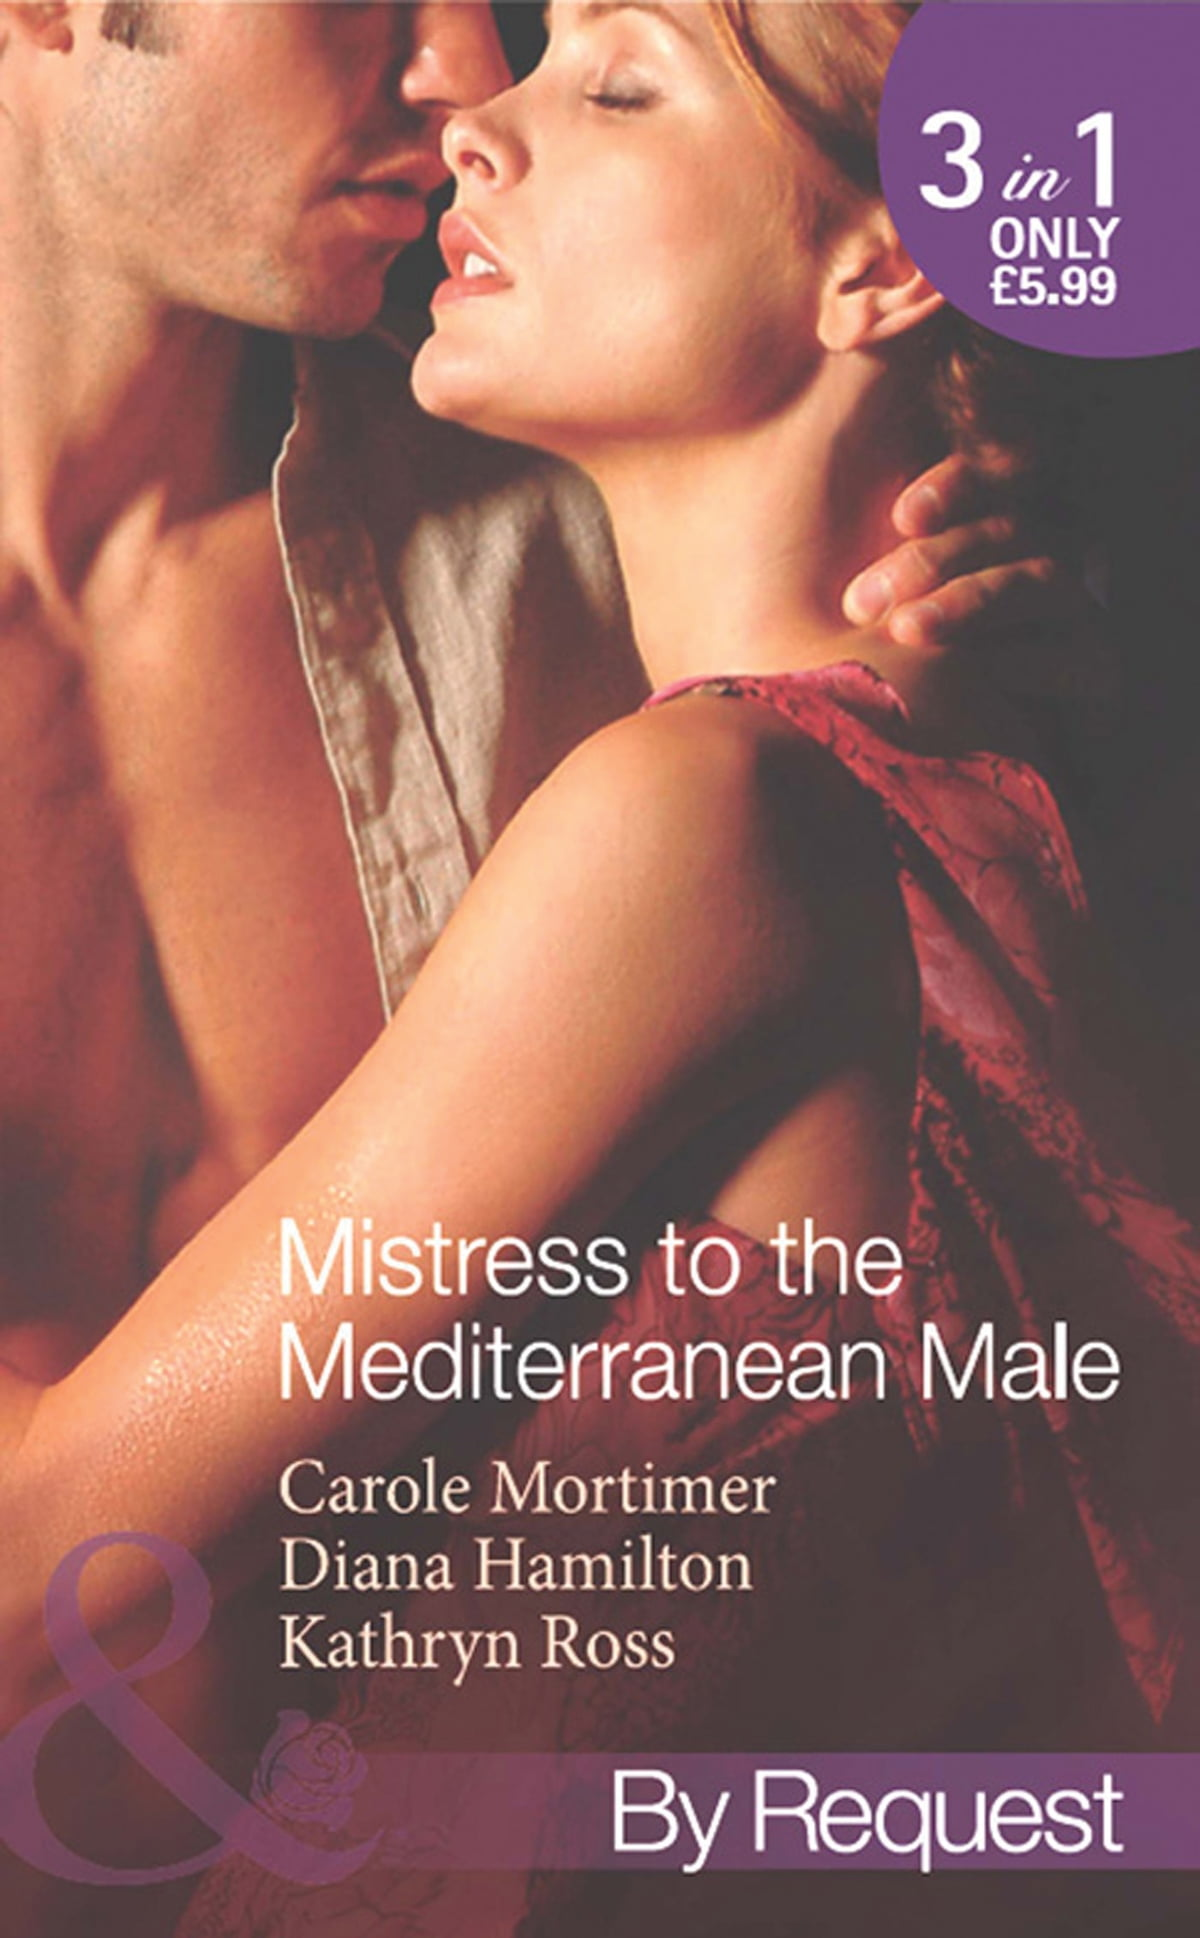 b9ac13c21cf7 Mistress to the Mediterranean Male  The Mediterranean Millionaire s ...